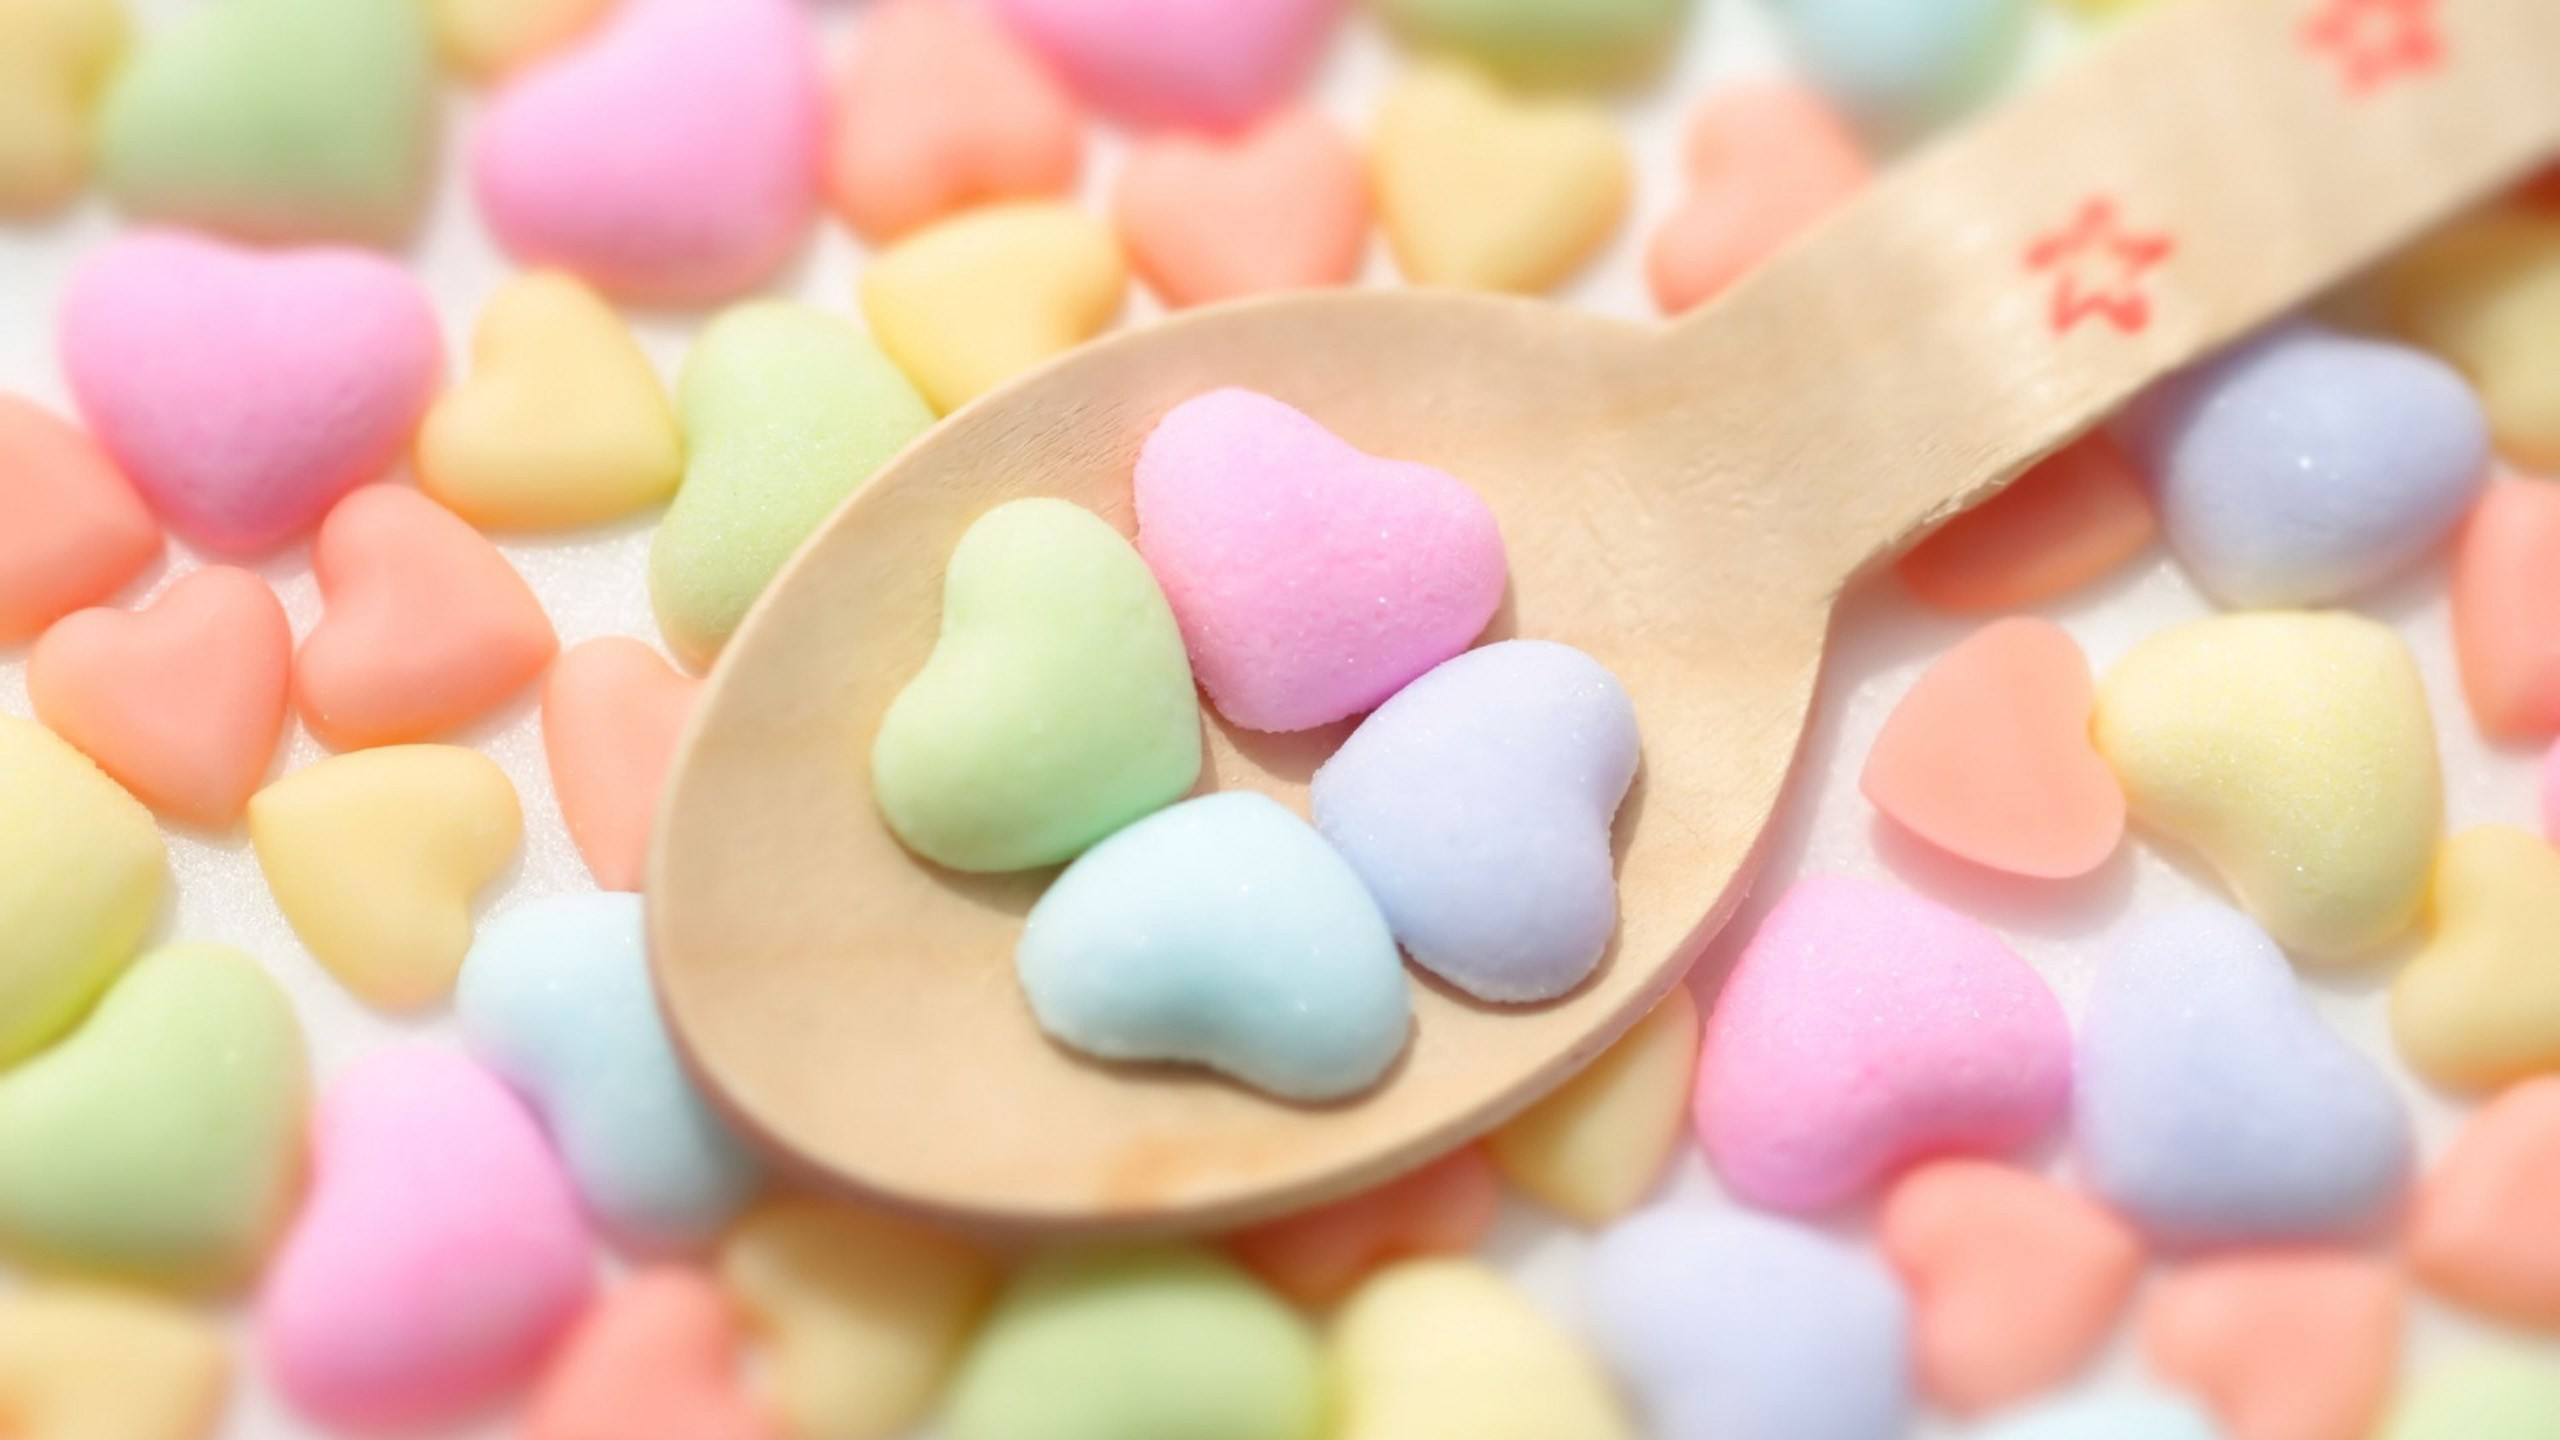 Colorful Heart Candies Desktop Wallpaper HD